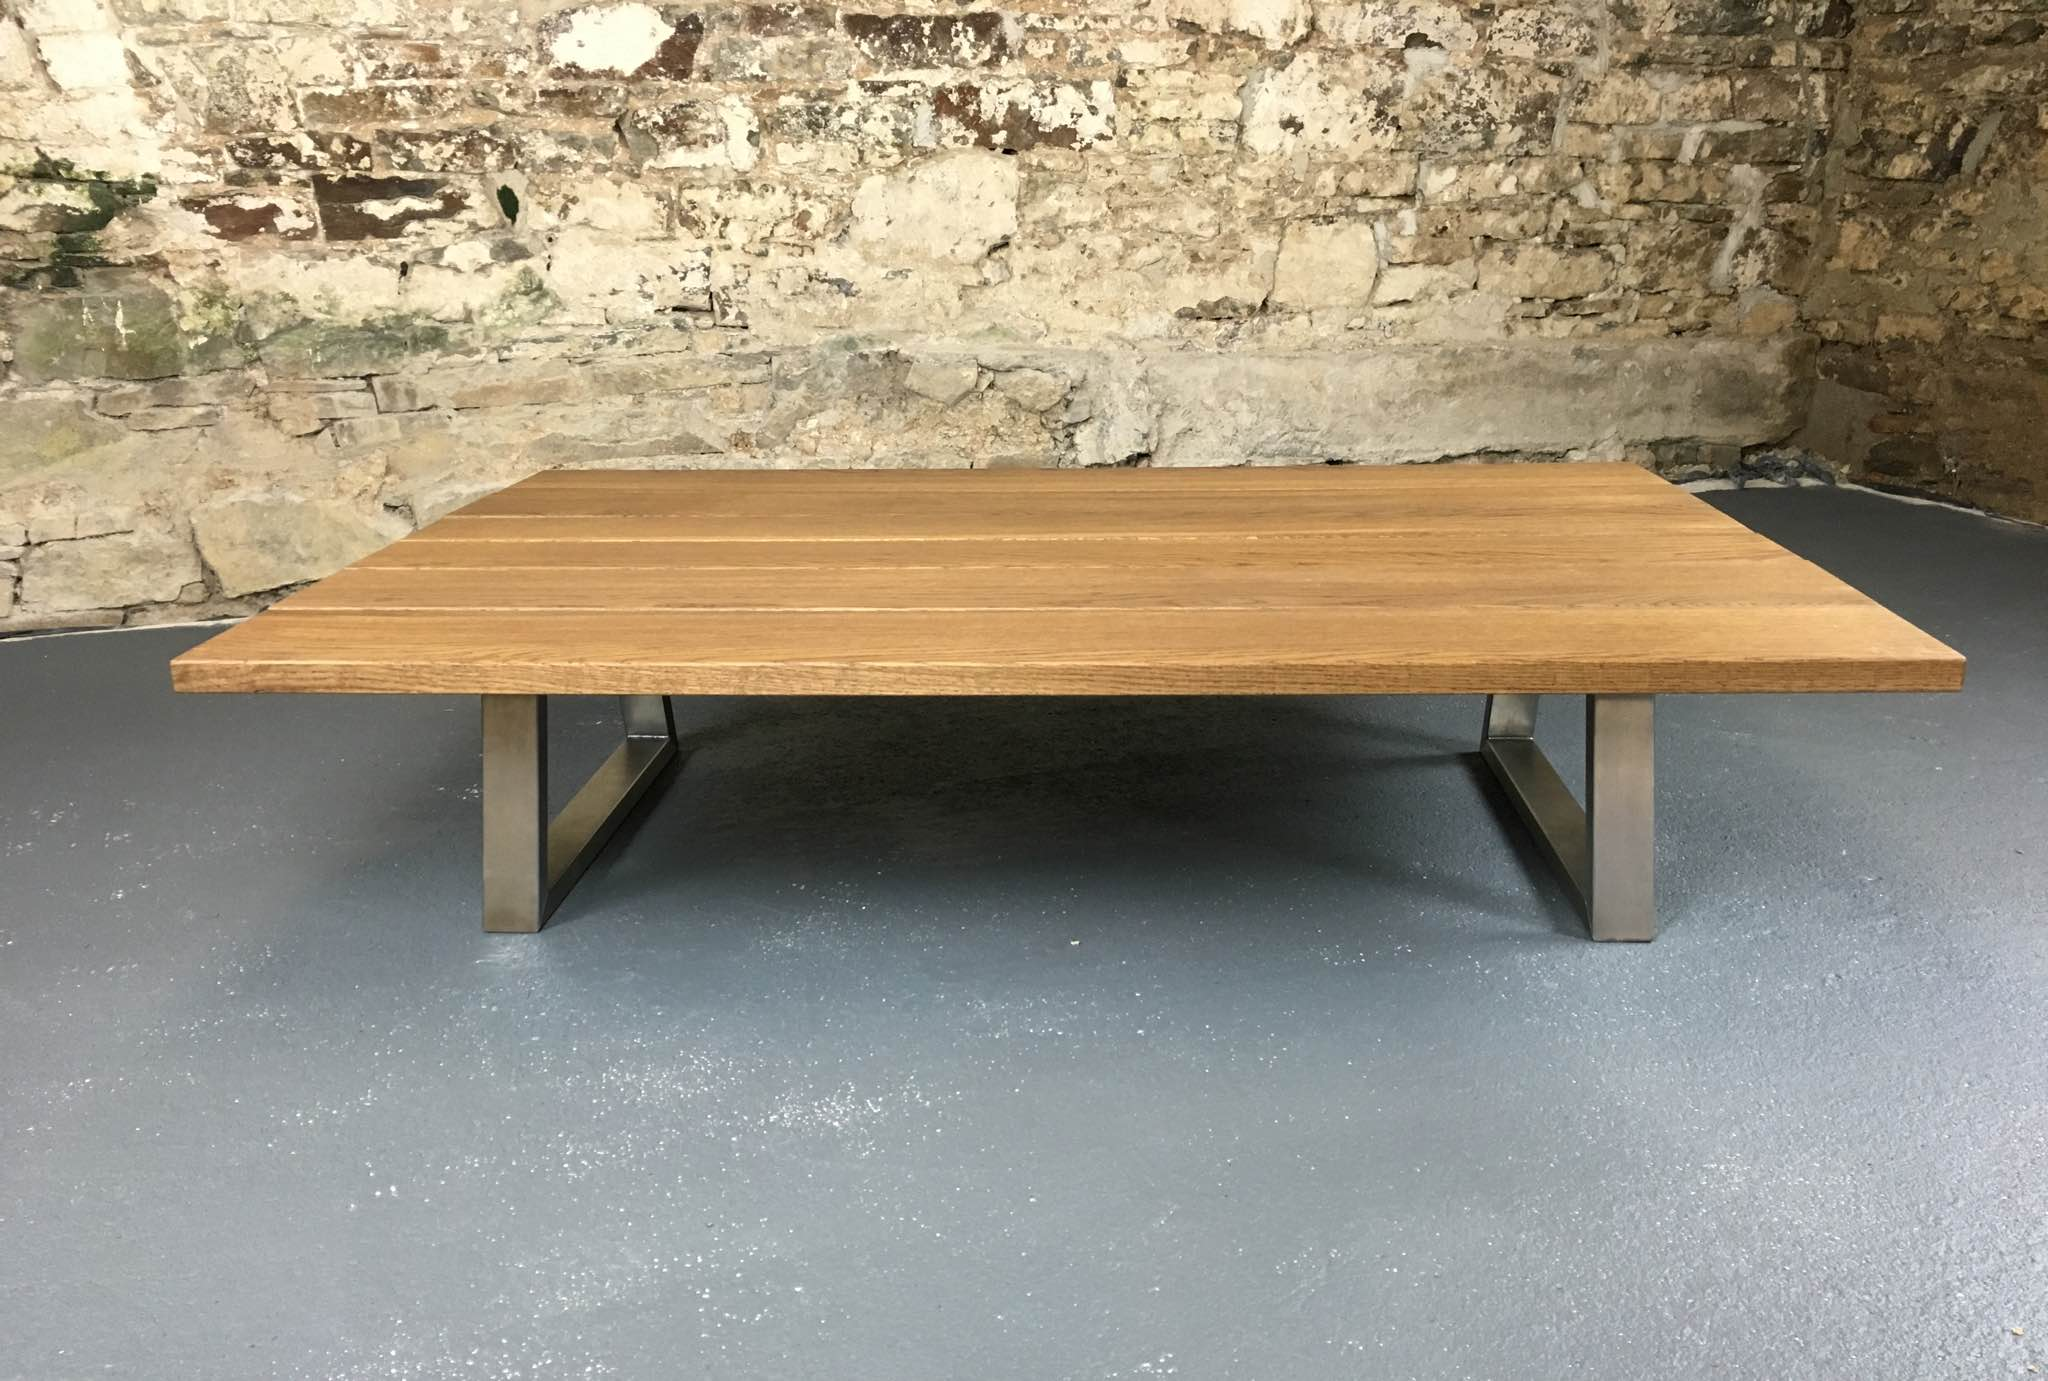 The table pictured measures 1500 x 1000 x 350mm